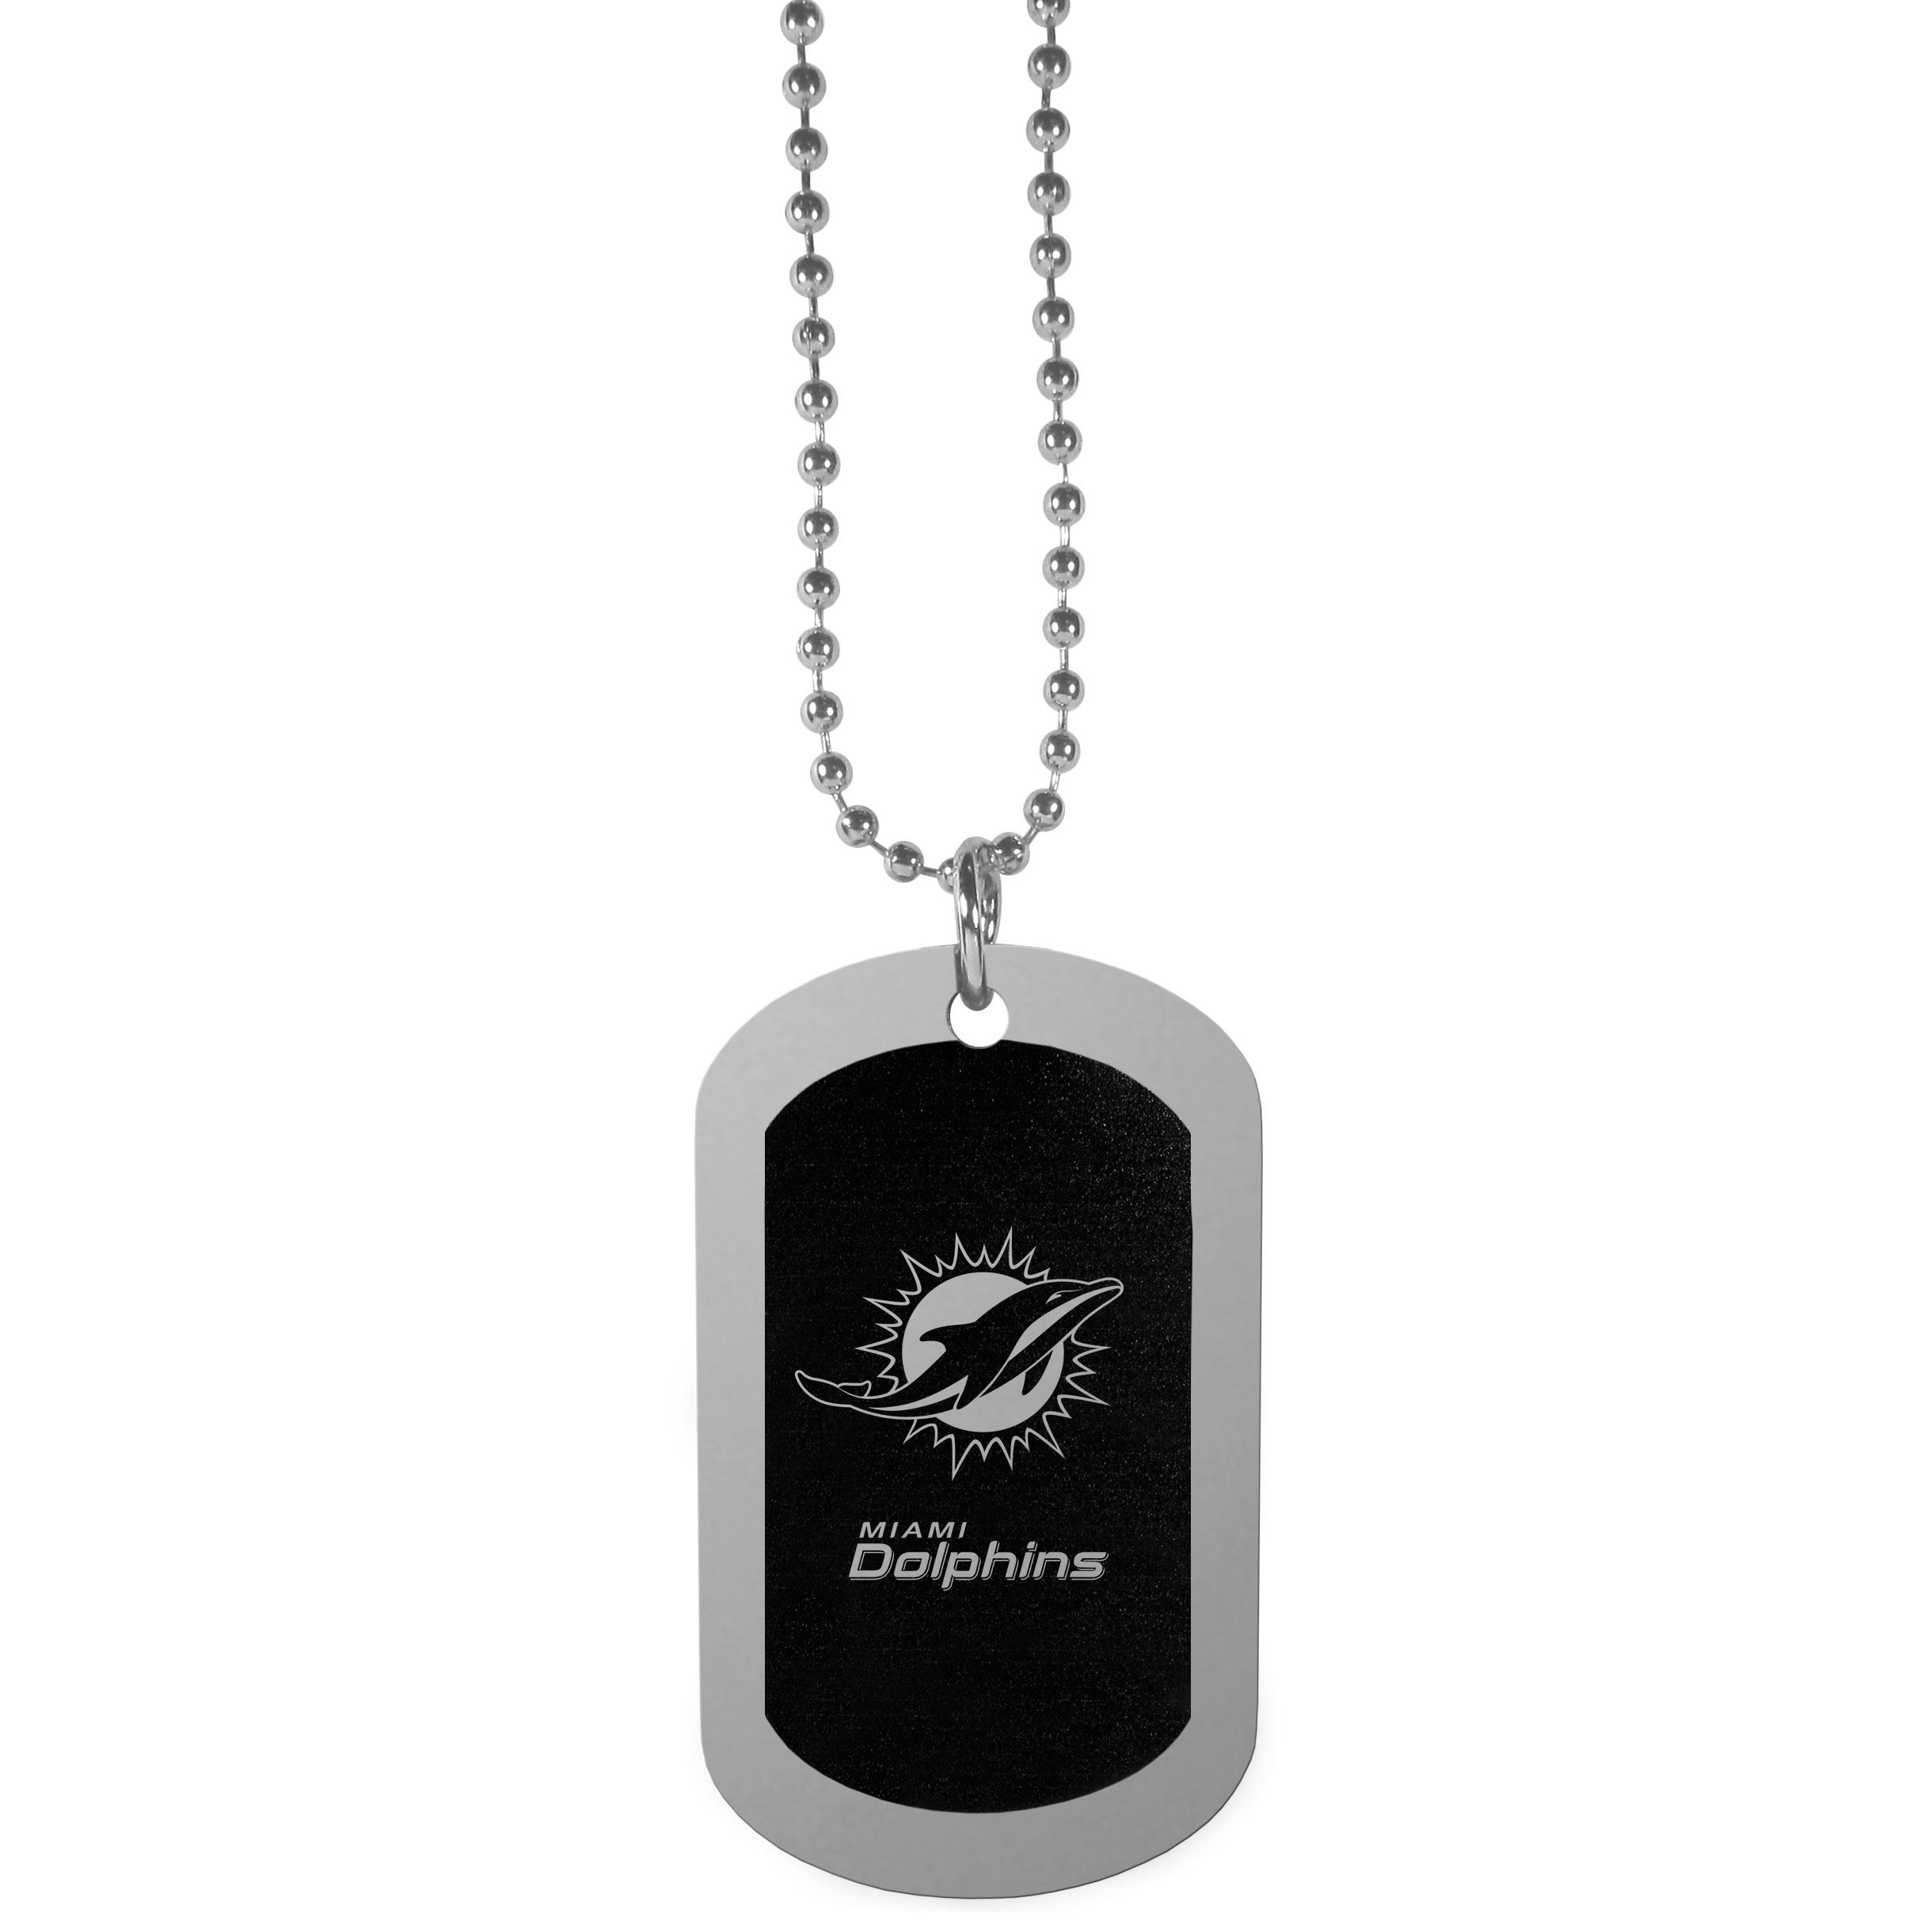 Miami Dolphins Chrome Tag Necklace - Dog tag necklaces are a fashion statement that is here to stay. The sporty version of the classic tag features a black printed over a high polish tag to create a bold and sporty look. The tag comes on a 26 inch ball chain with a ball and joint clasp. Any Miami Dolphins would be proud to wear this attractive fashion accessory.